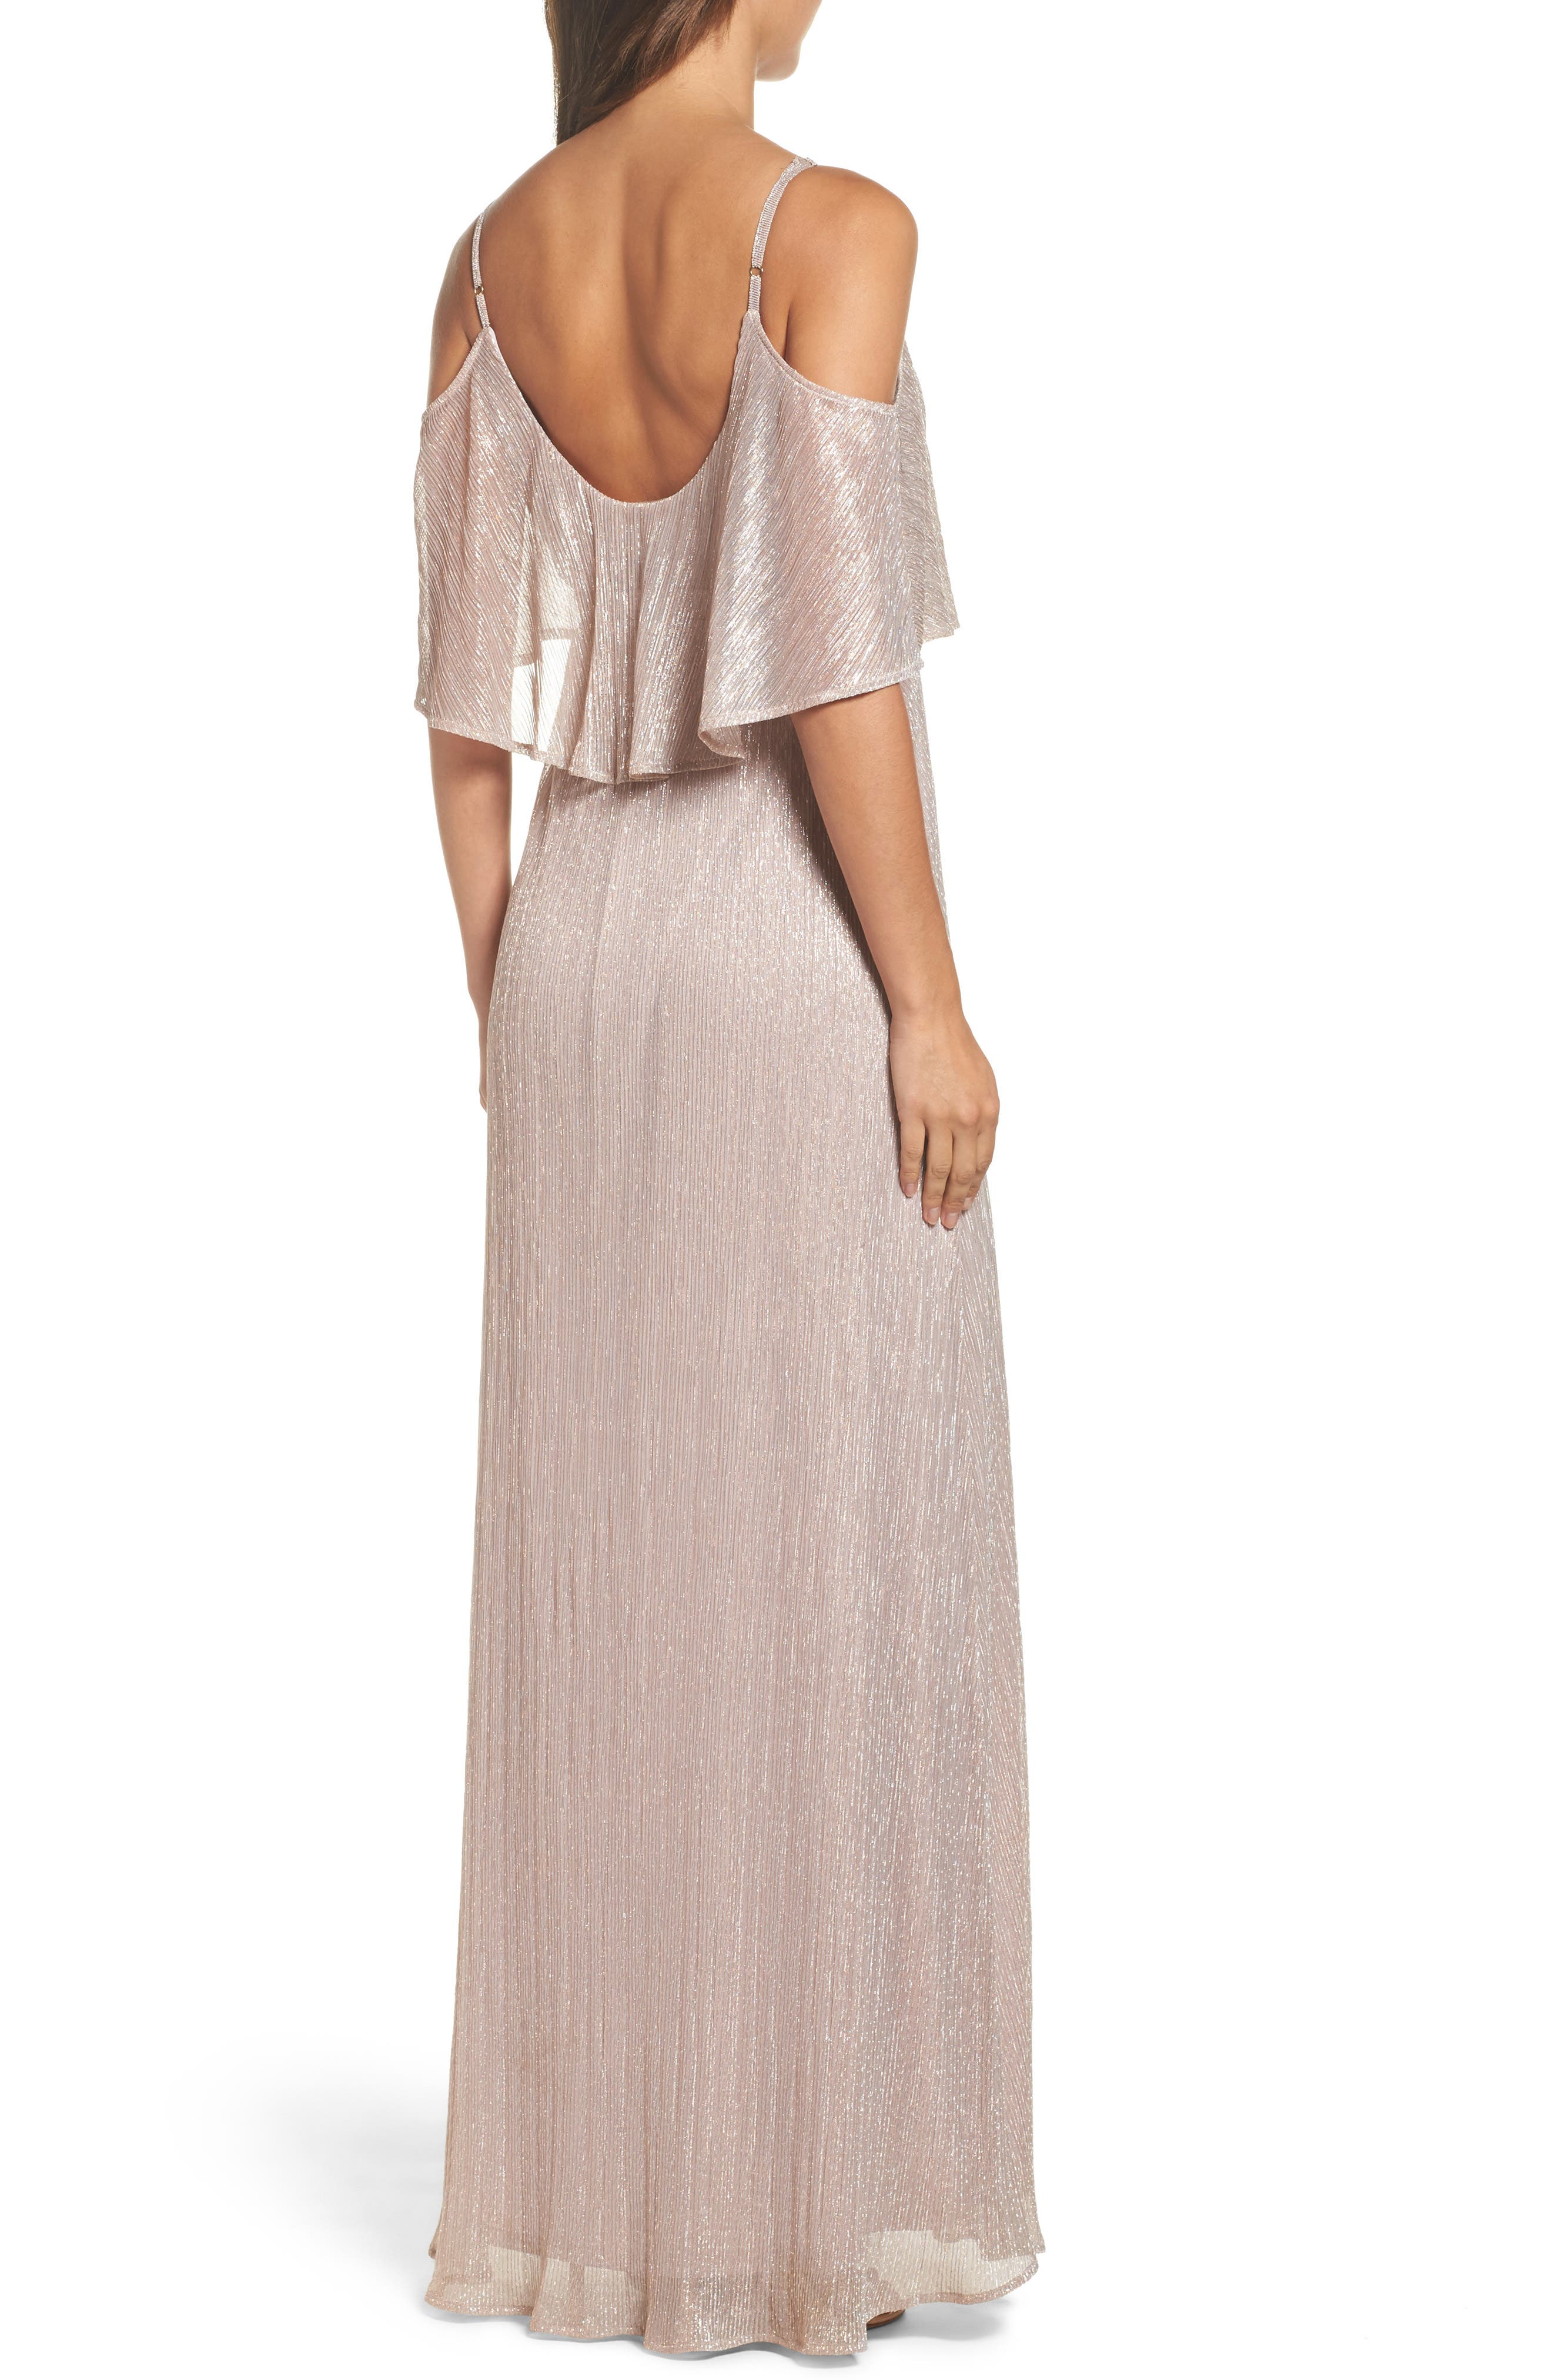 Caitlin Ruffle Maxi Dress,                             Alternate thumbnail 2, color,                             Magic Muave Glitter